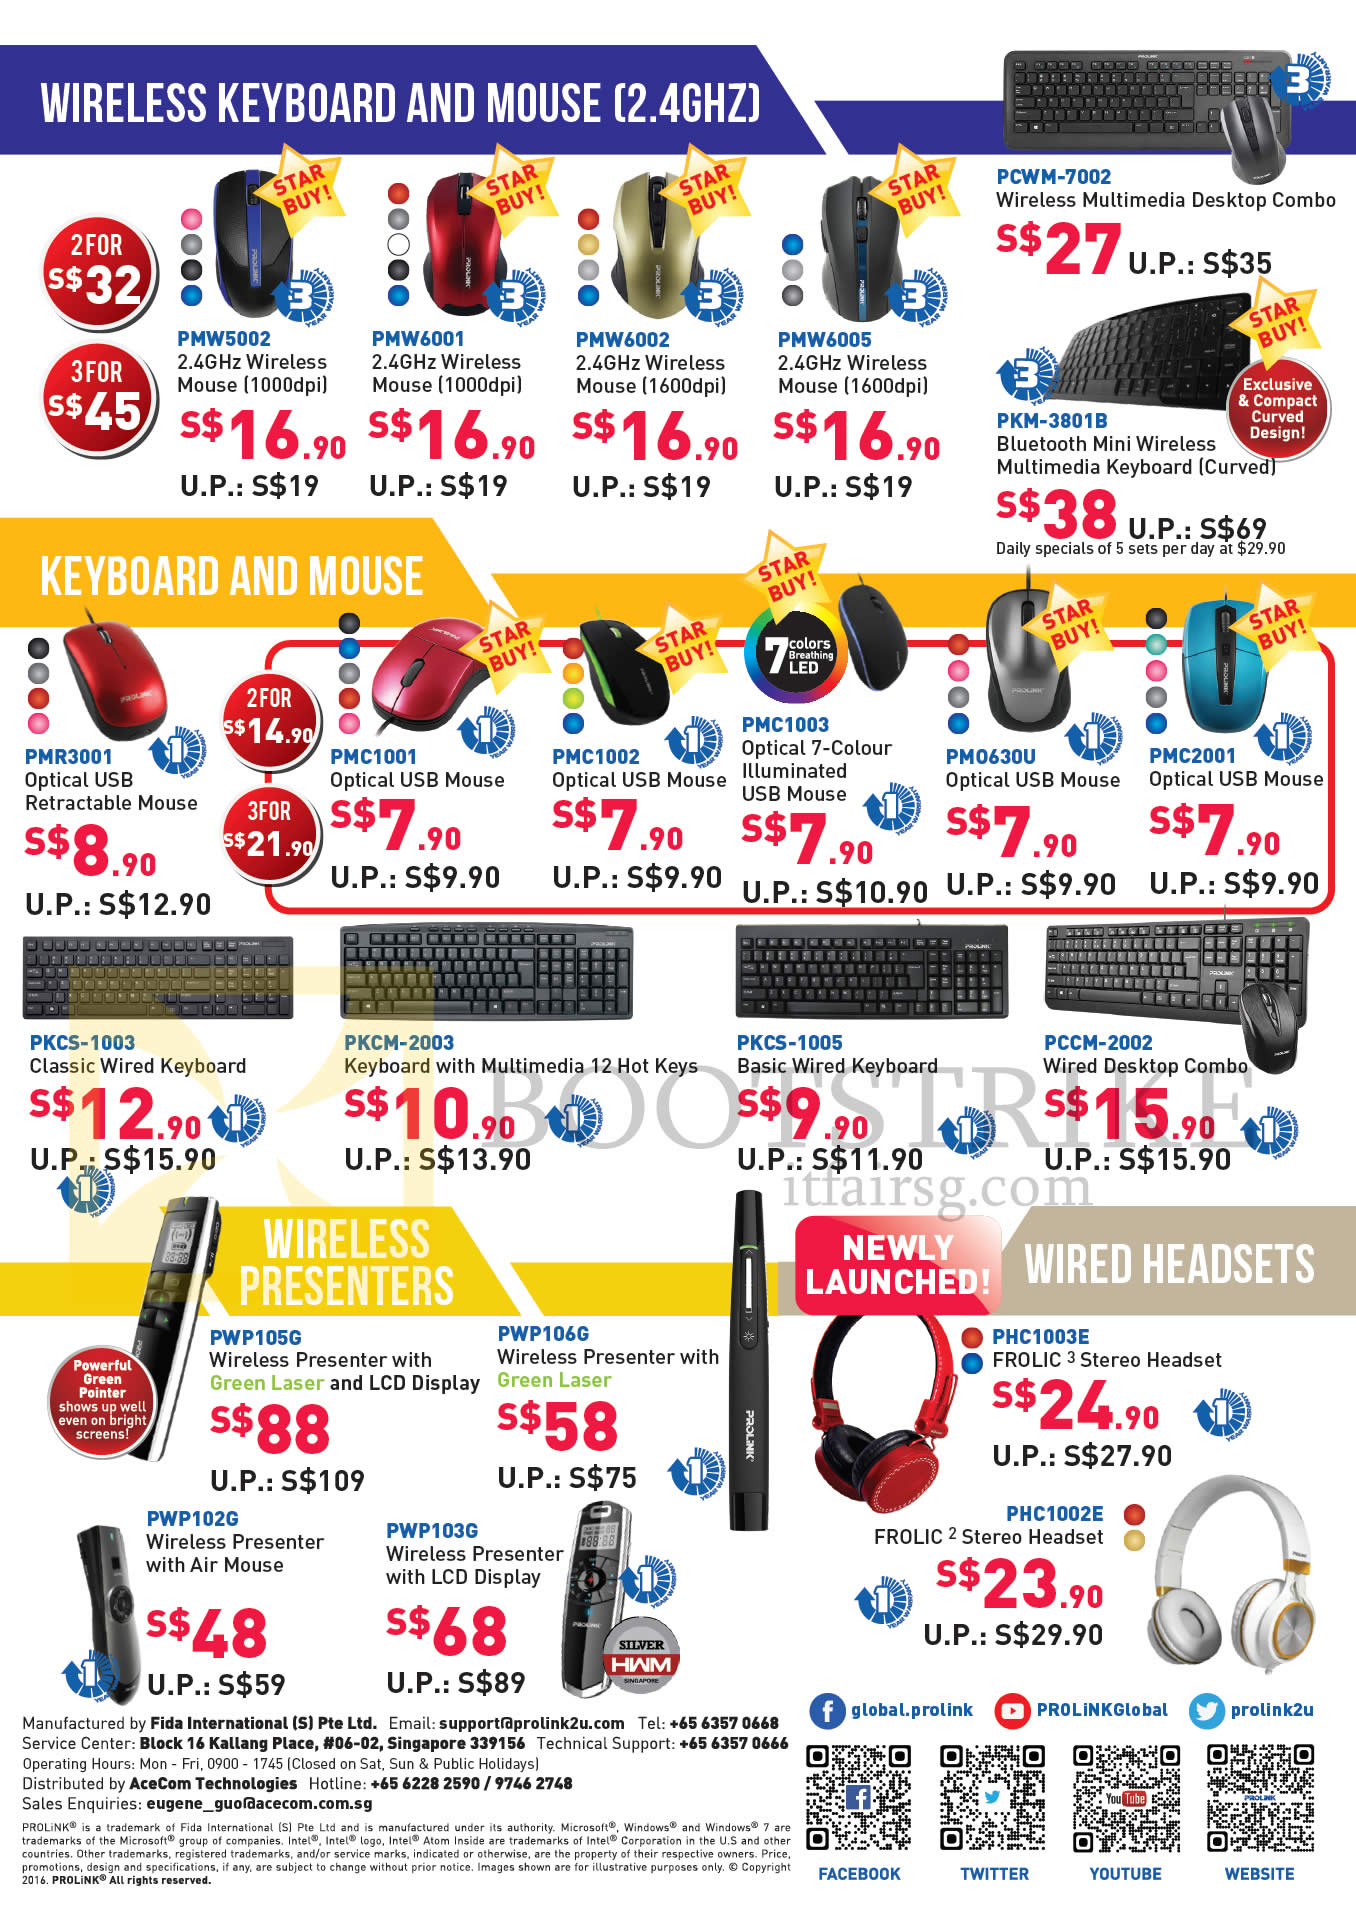 COMEX 2016 price list image brochure of Prolink Wireless Keyboard, Mouse, Presenters, Headsets, PMW5002, 6001, 6002, 6005, PKM-3801B, PMR3001, PKCS-1003, 1005, PCCM-2002, PWP105G, 106G, 102G, 103G